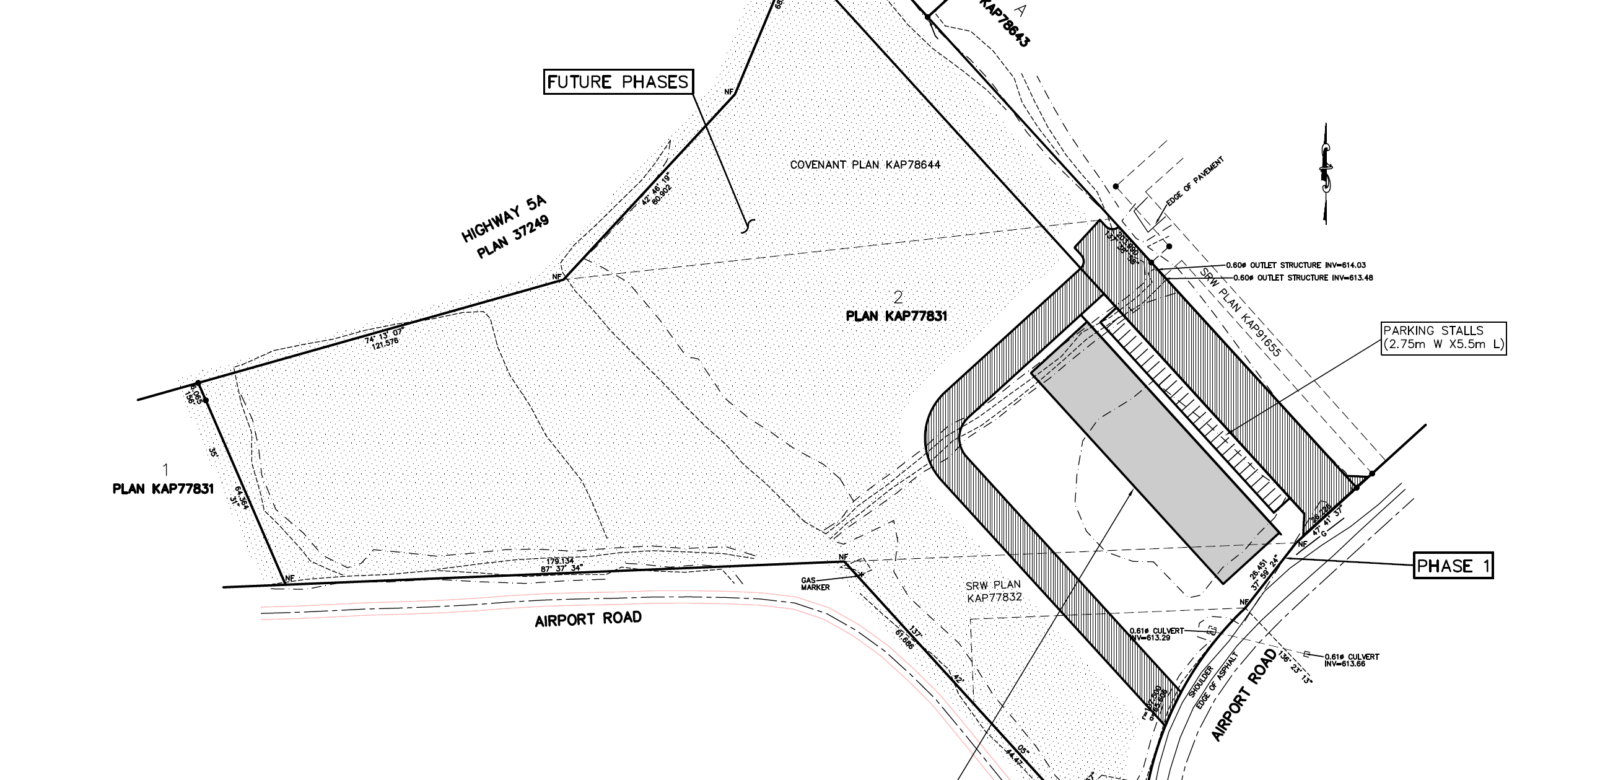 Merritt BC – Mixed Use Commercial and Industrial Development